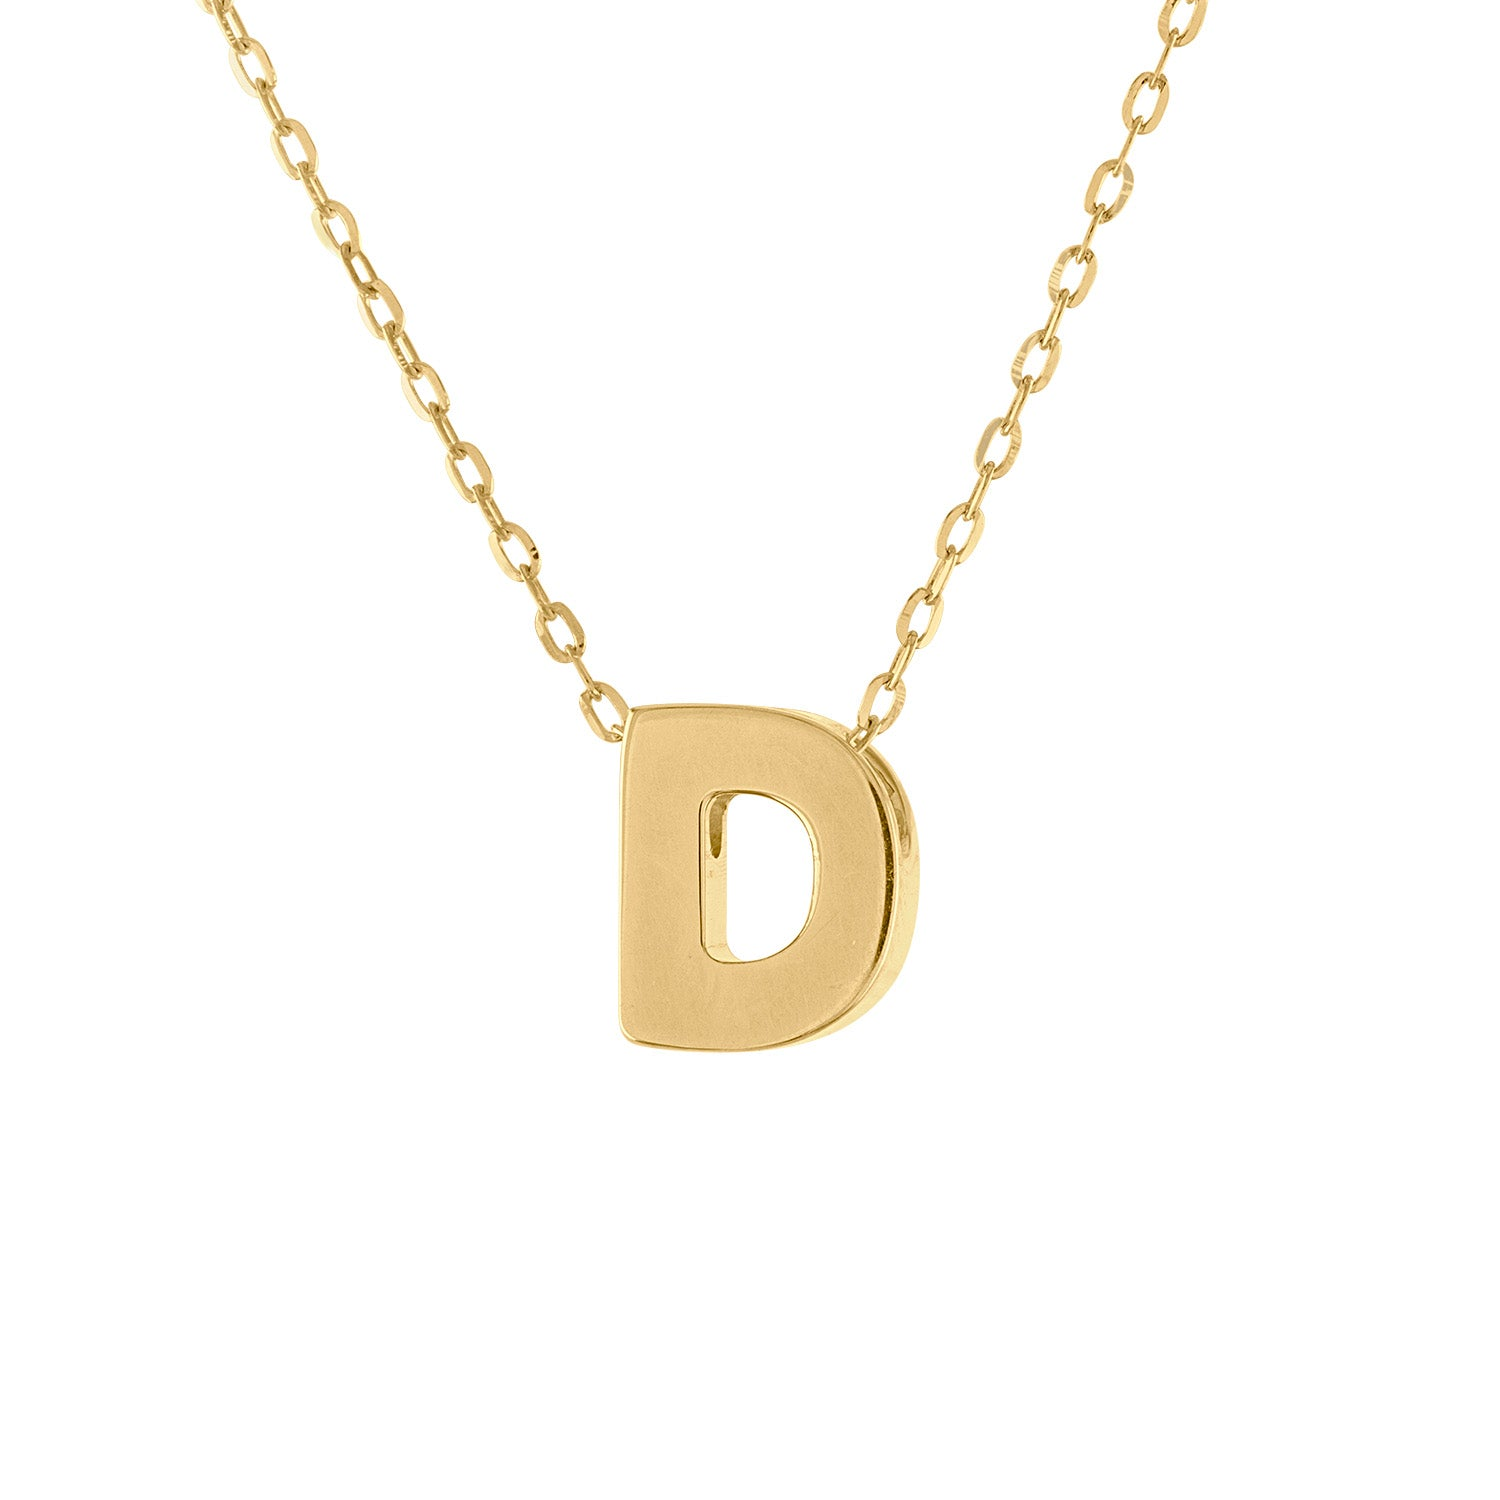 14k Yellow Gold plain initial D necklace